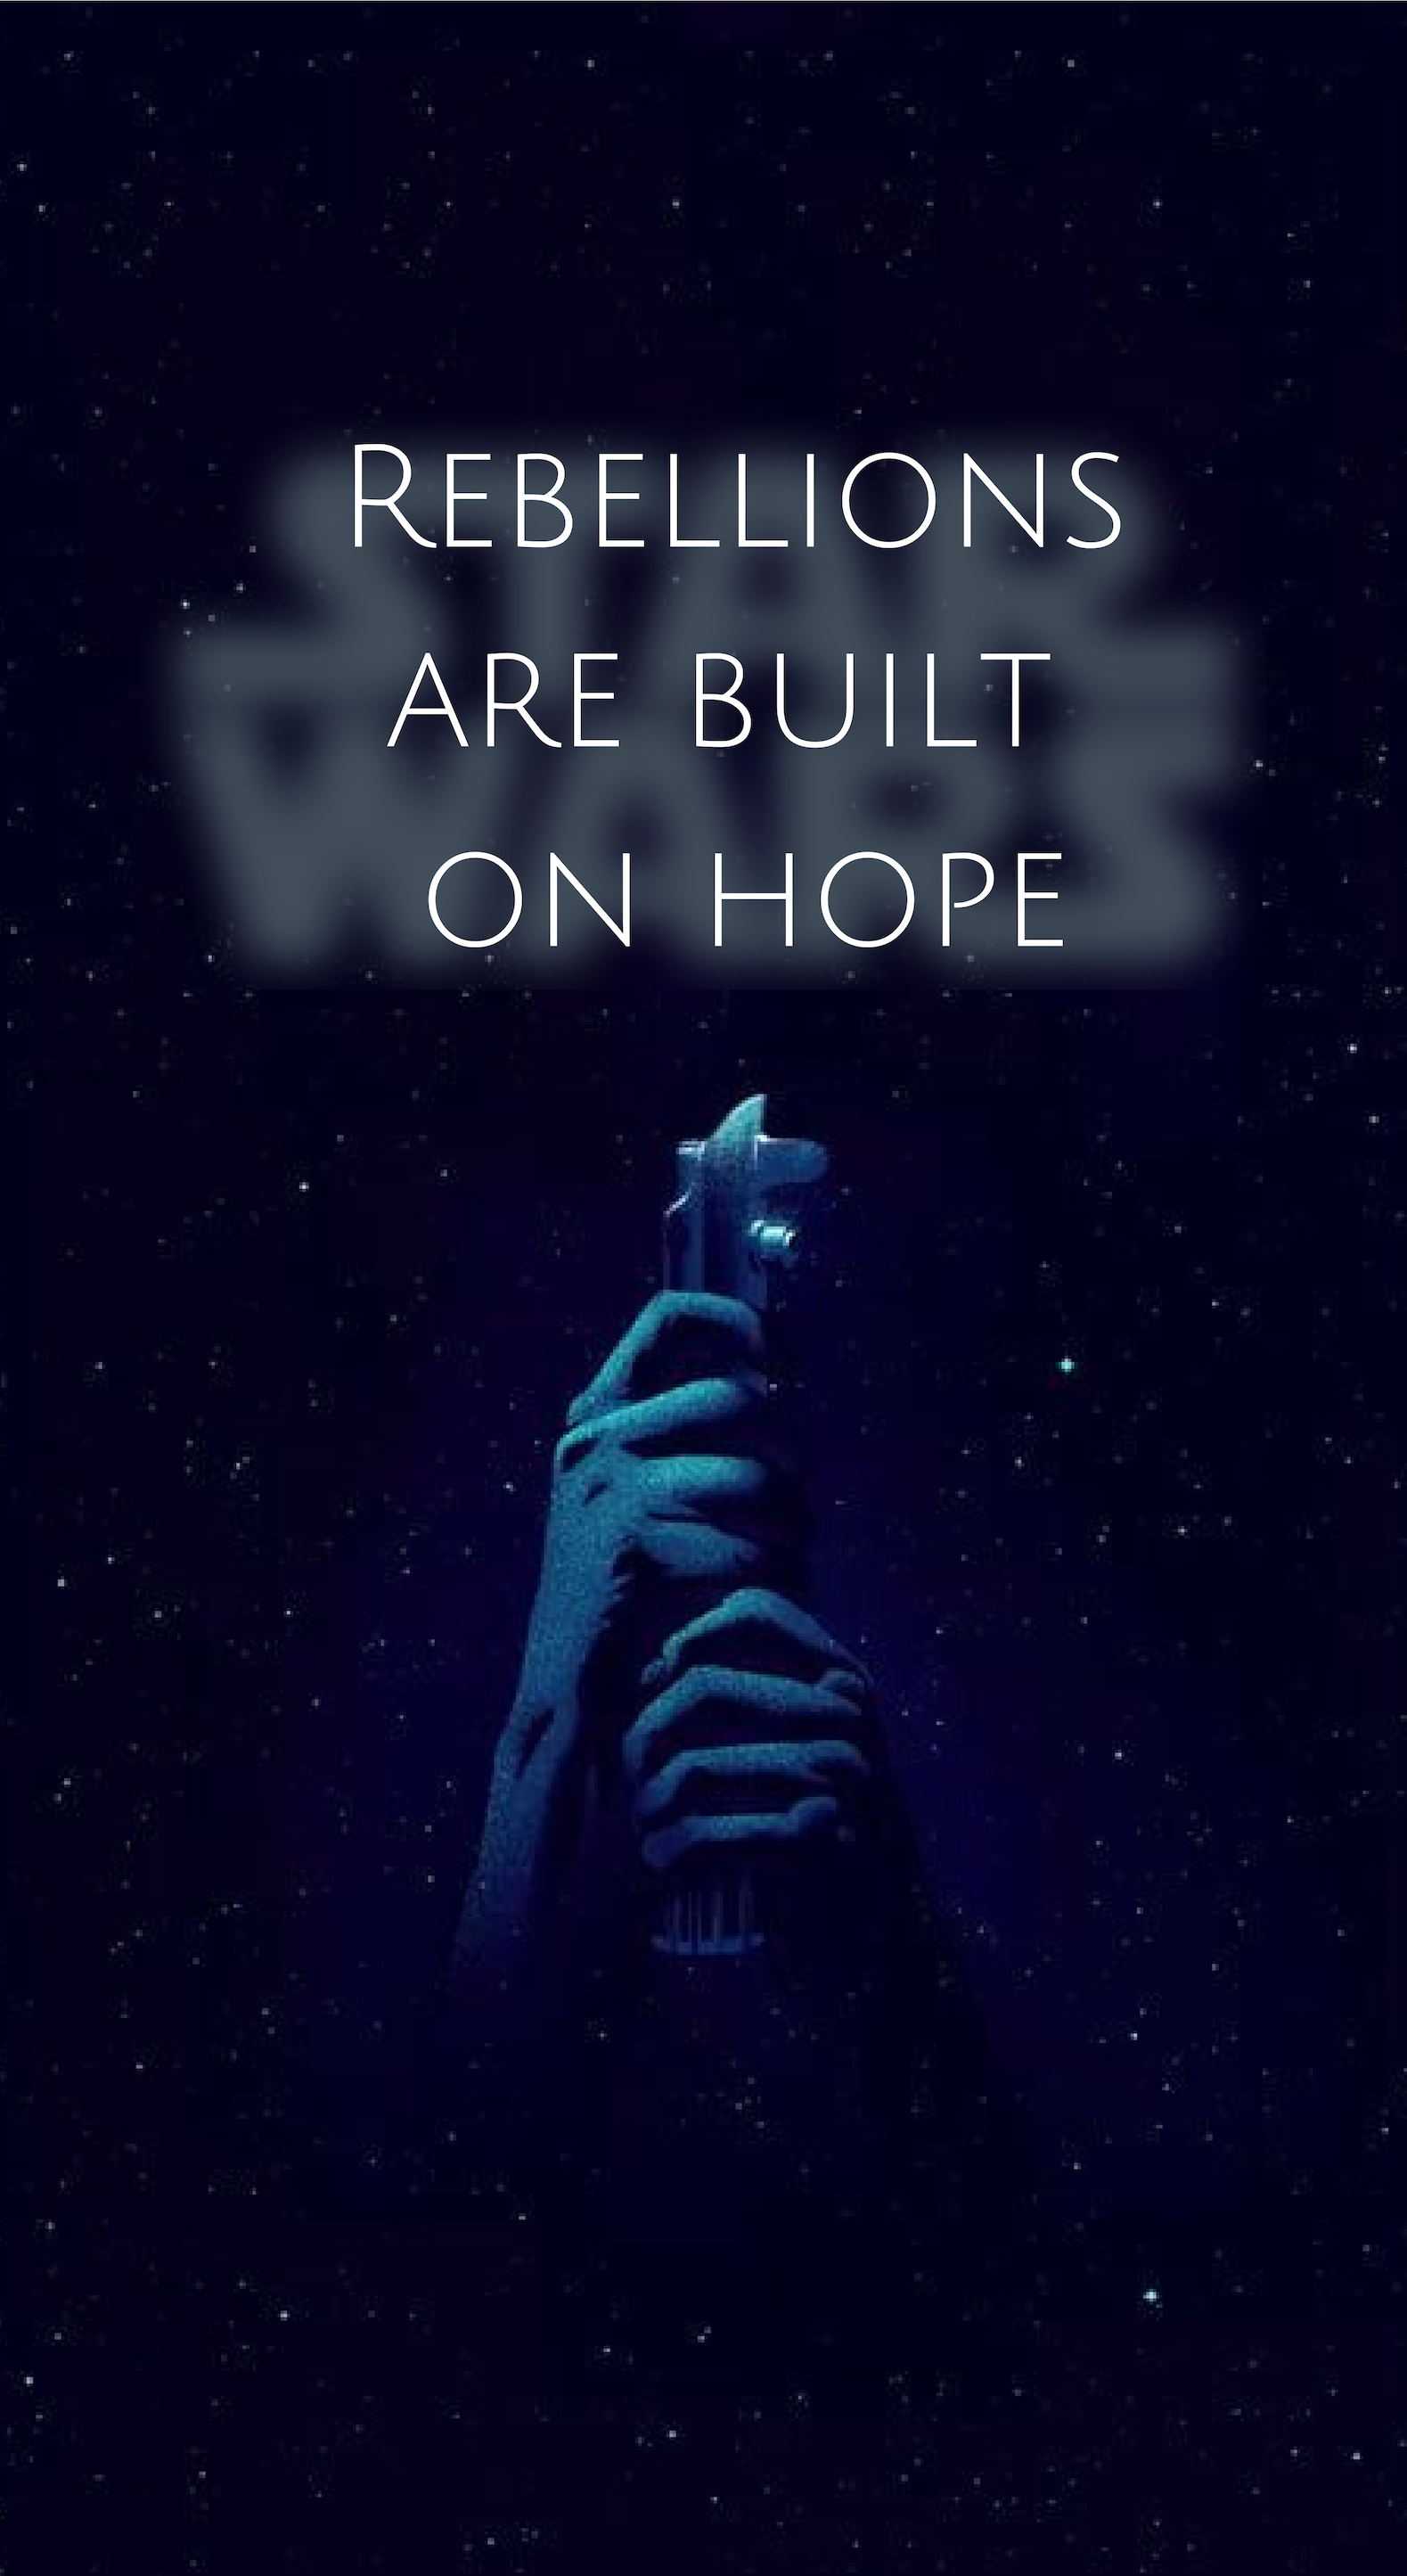 I Make Wallpapers If You Have A Specific Idea In Mind I Can Try To Make It For You Just Message Me On P Star Wars Quotes Wallpaper Quotes Homemade Wallpaper